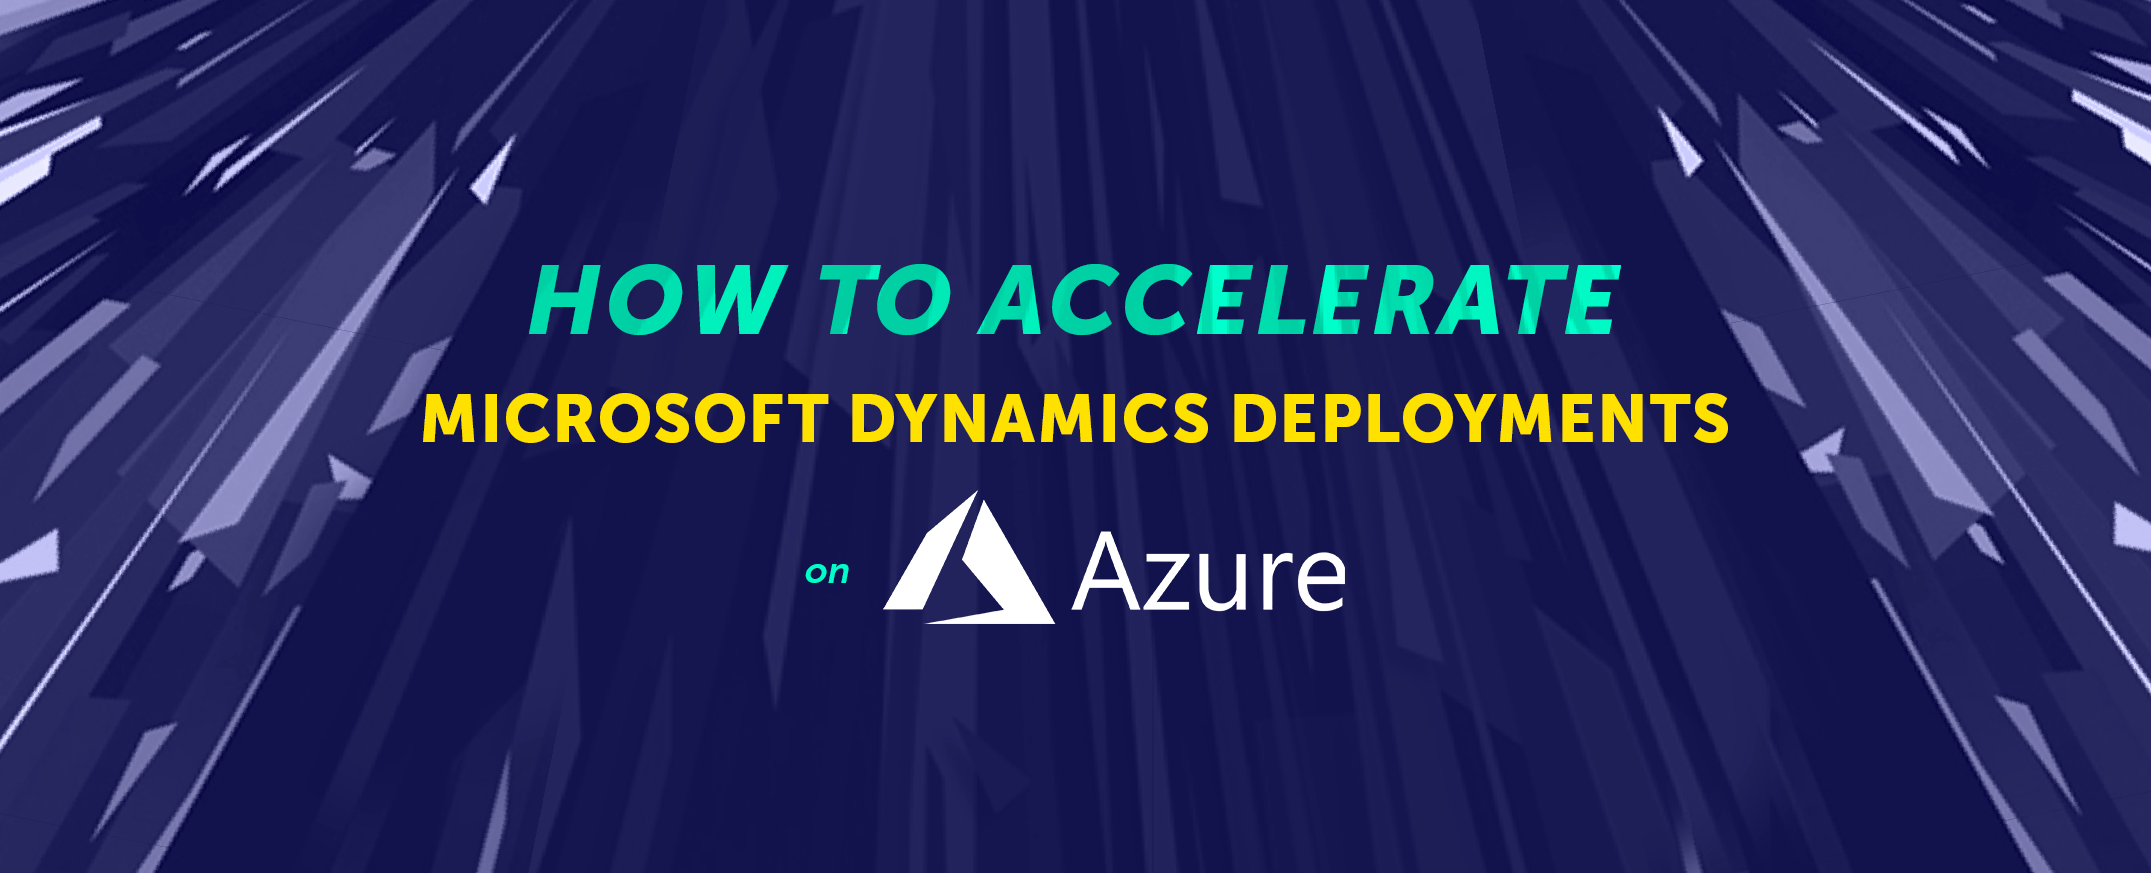 How To Accelerate Microsoft Dynamics Deployments on Microsoft Azure